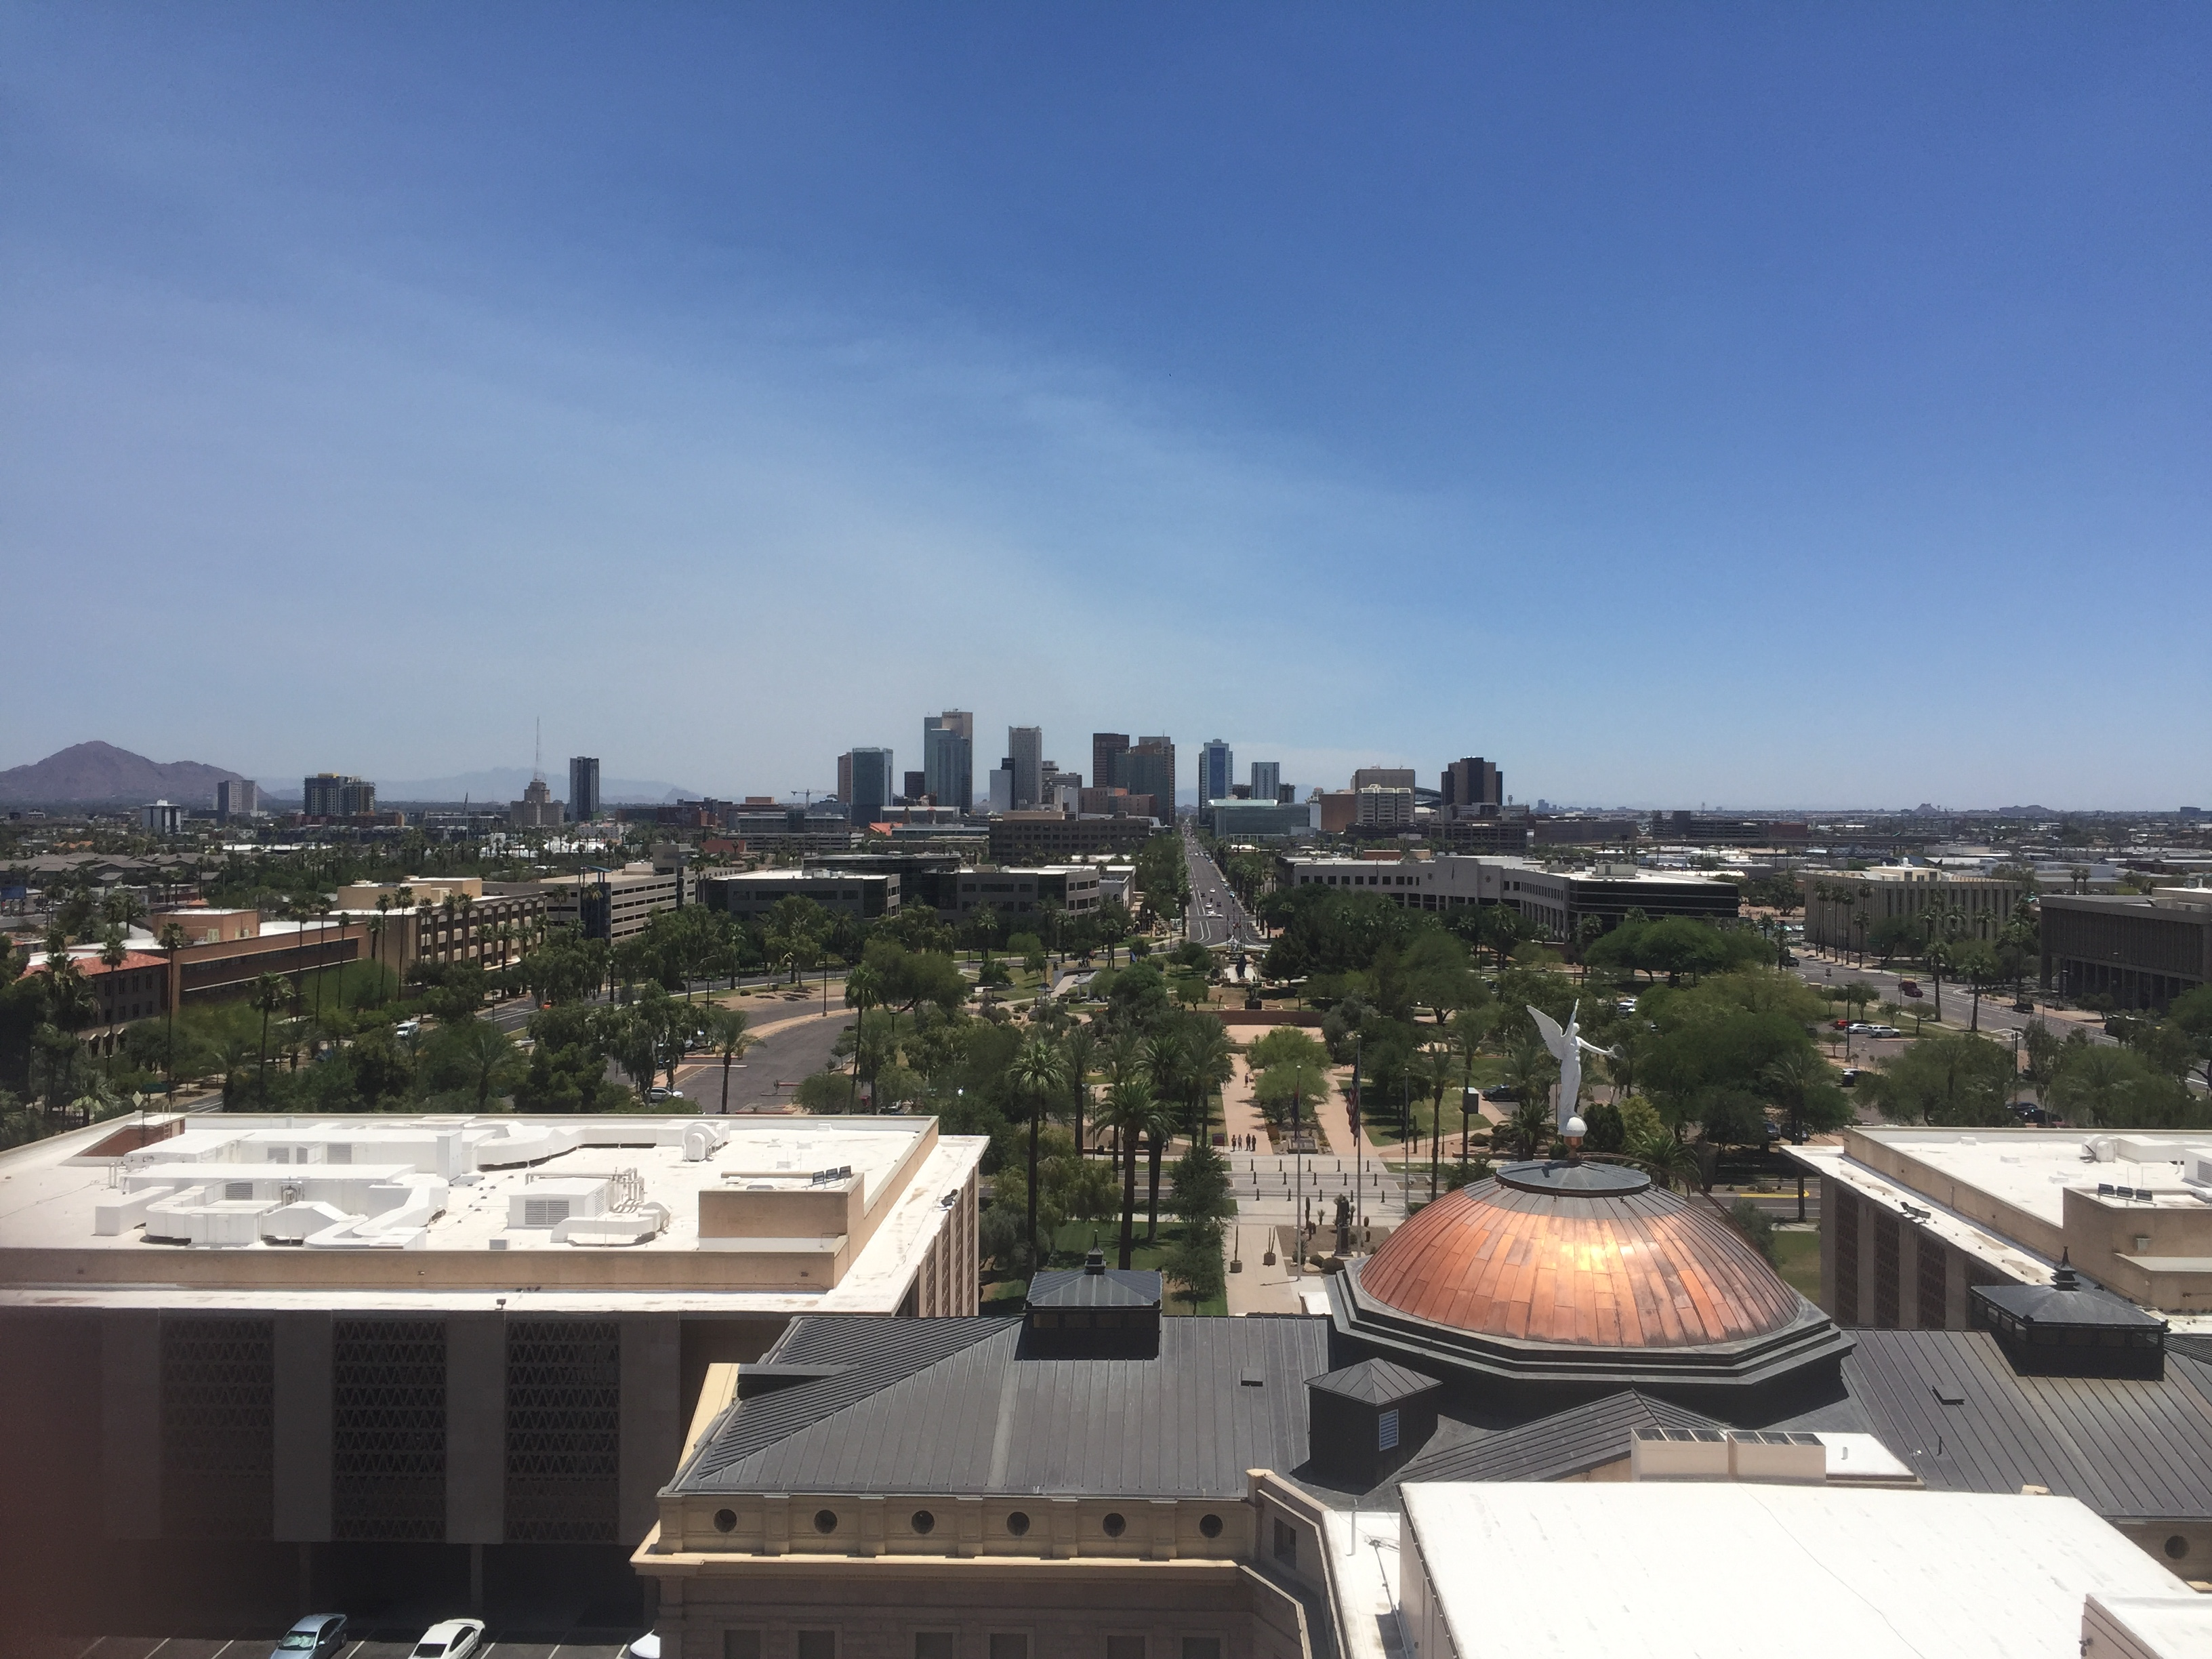 View of Phoenix from City Hall